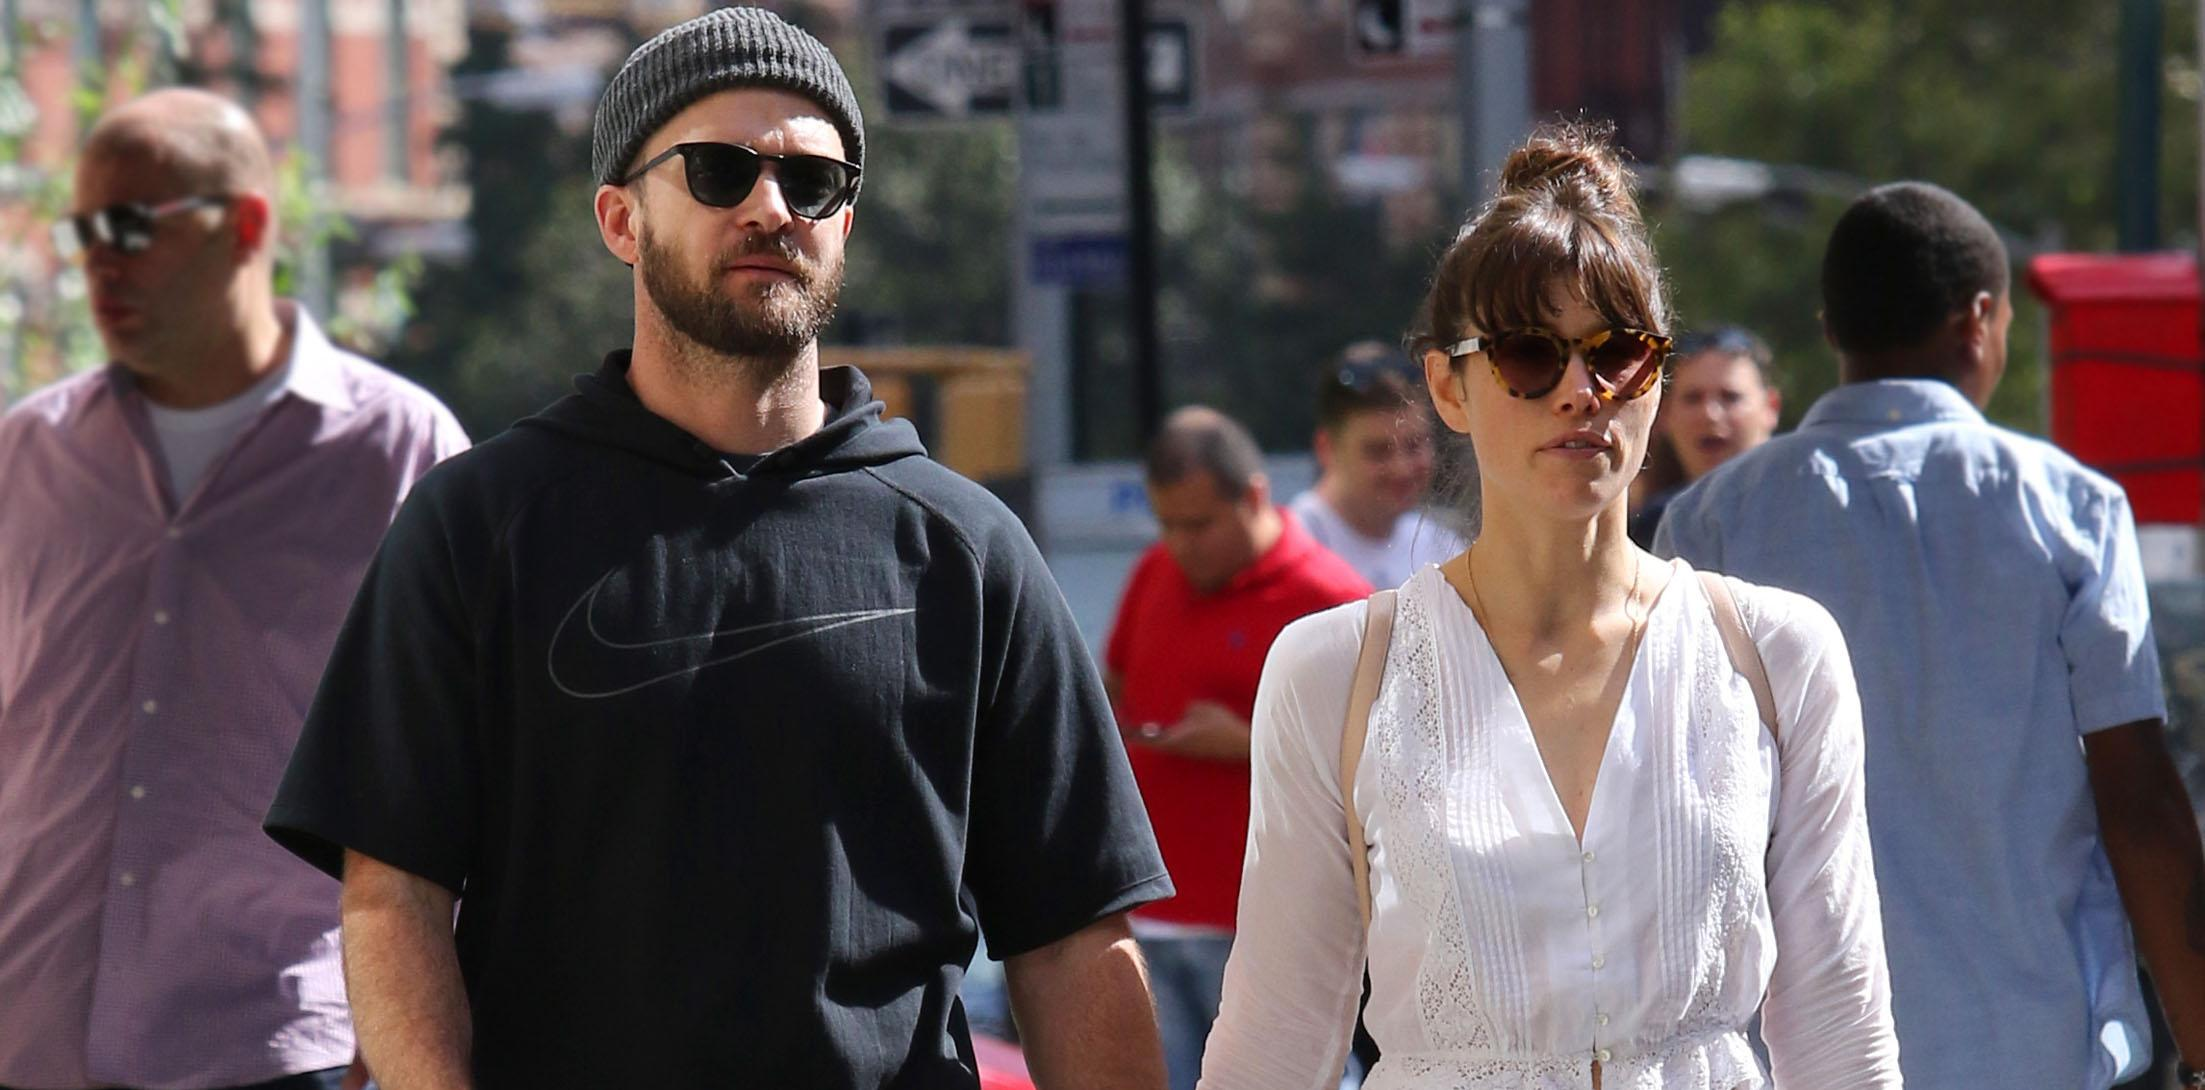 Justin Timberlake and Jessica Biel hold hands while taking a romantic stroll in NYC